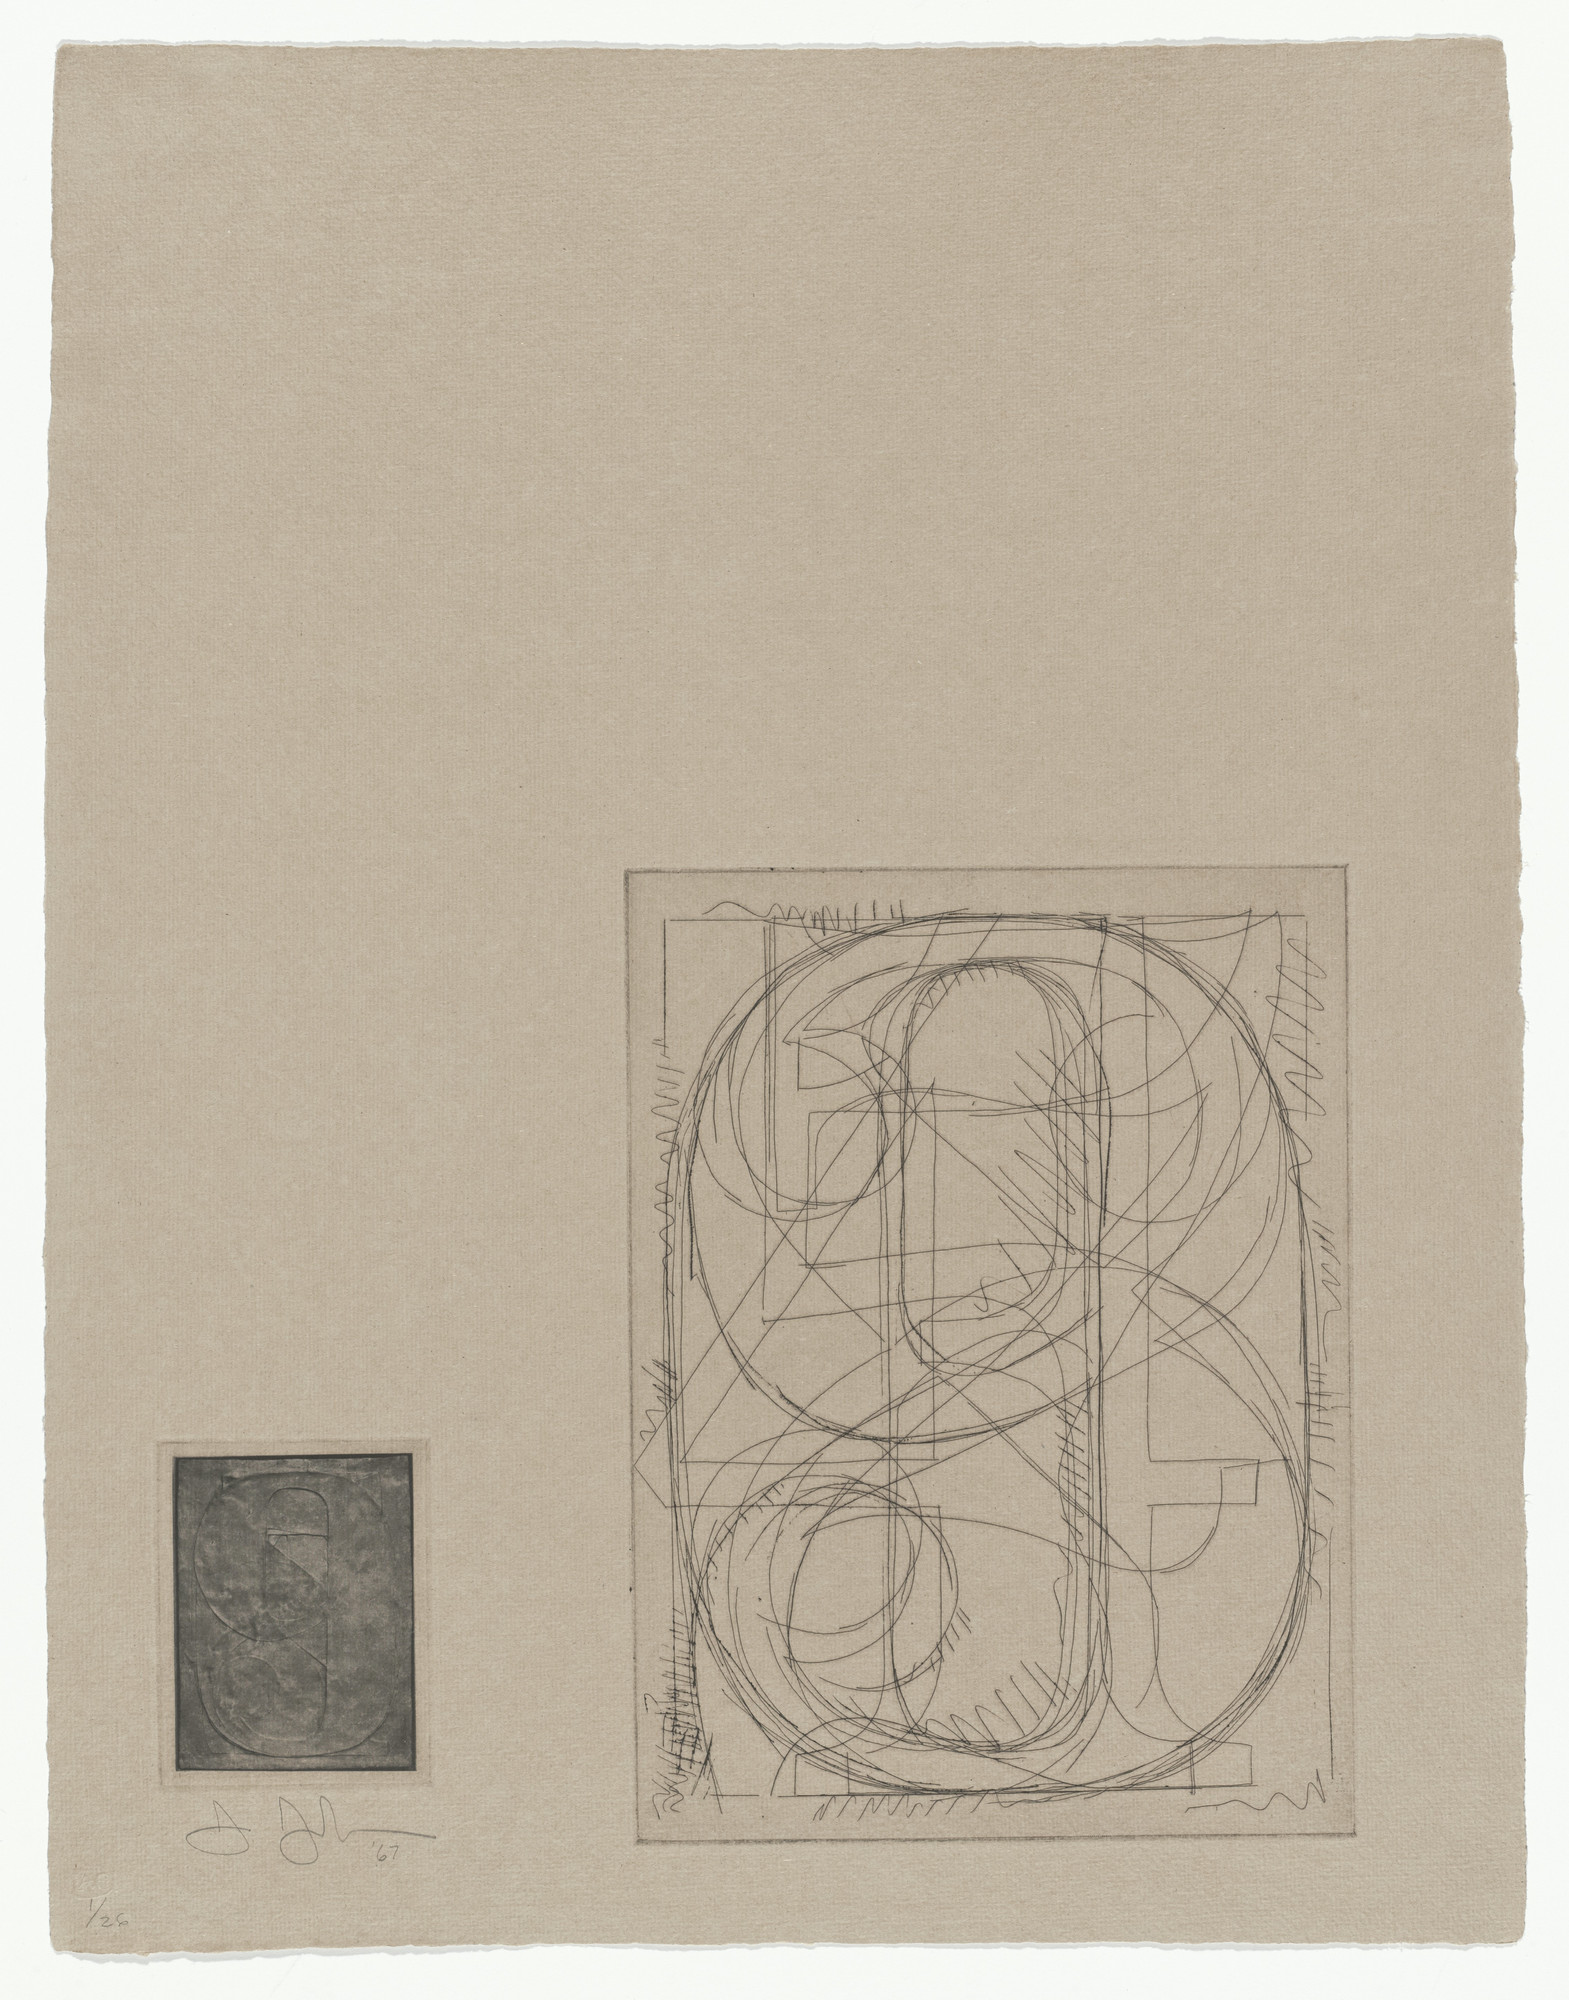 Jasper Johns. Numbers from 1st Etchings. 1967